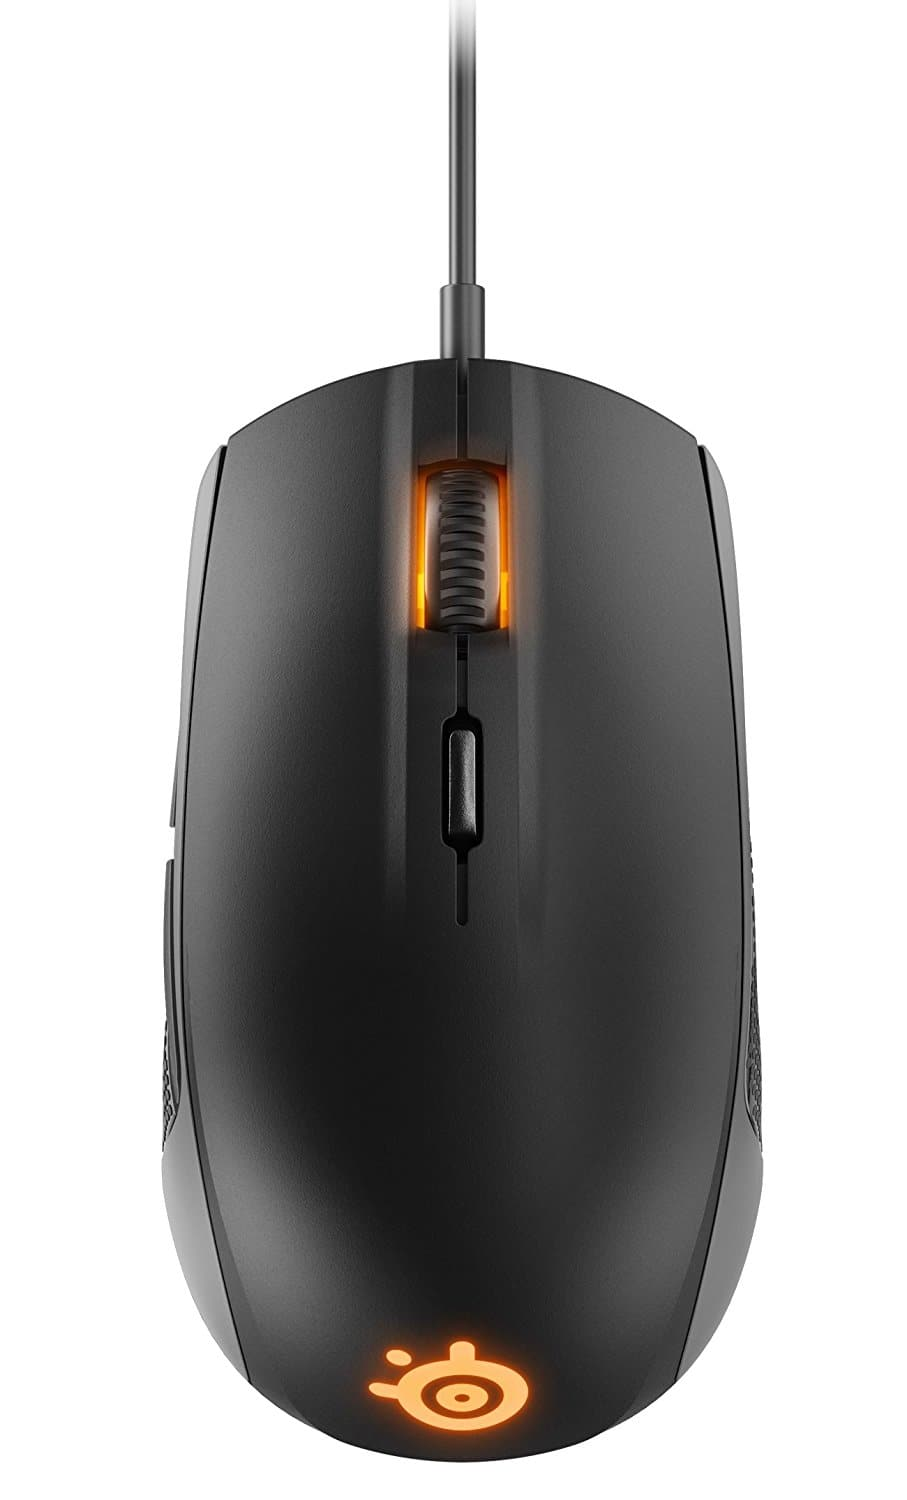 SteelSeries Rival 100 Mouse Full RGB YMMV @ Walmart B&M $7